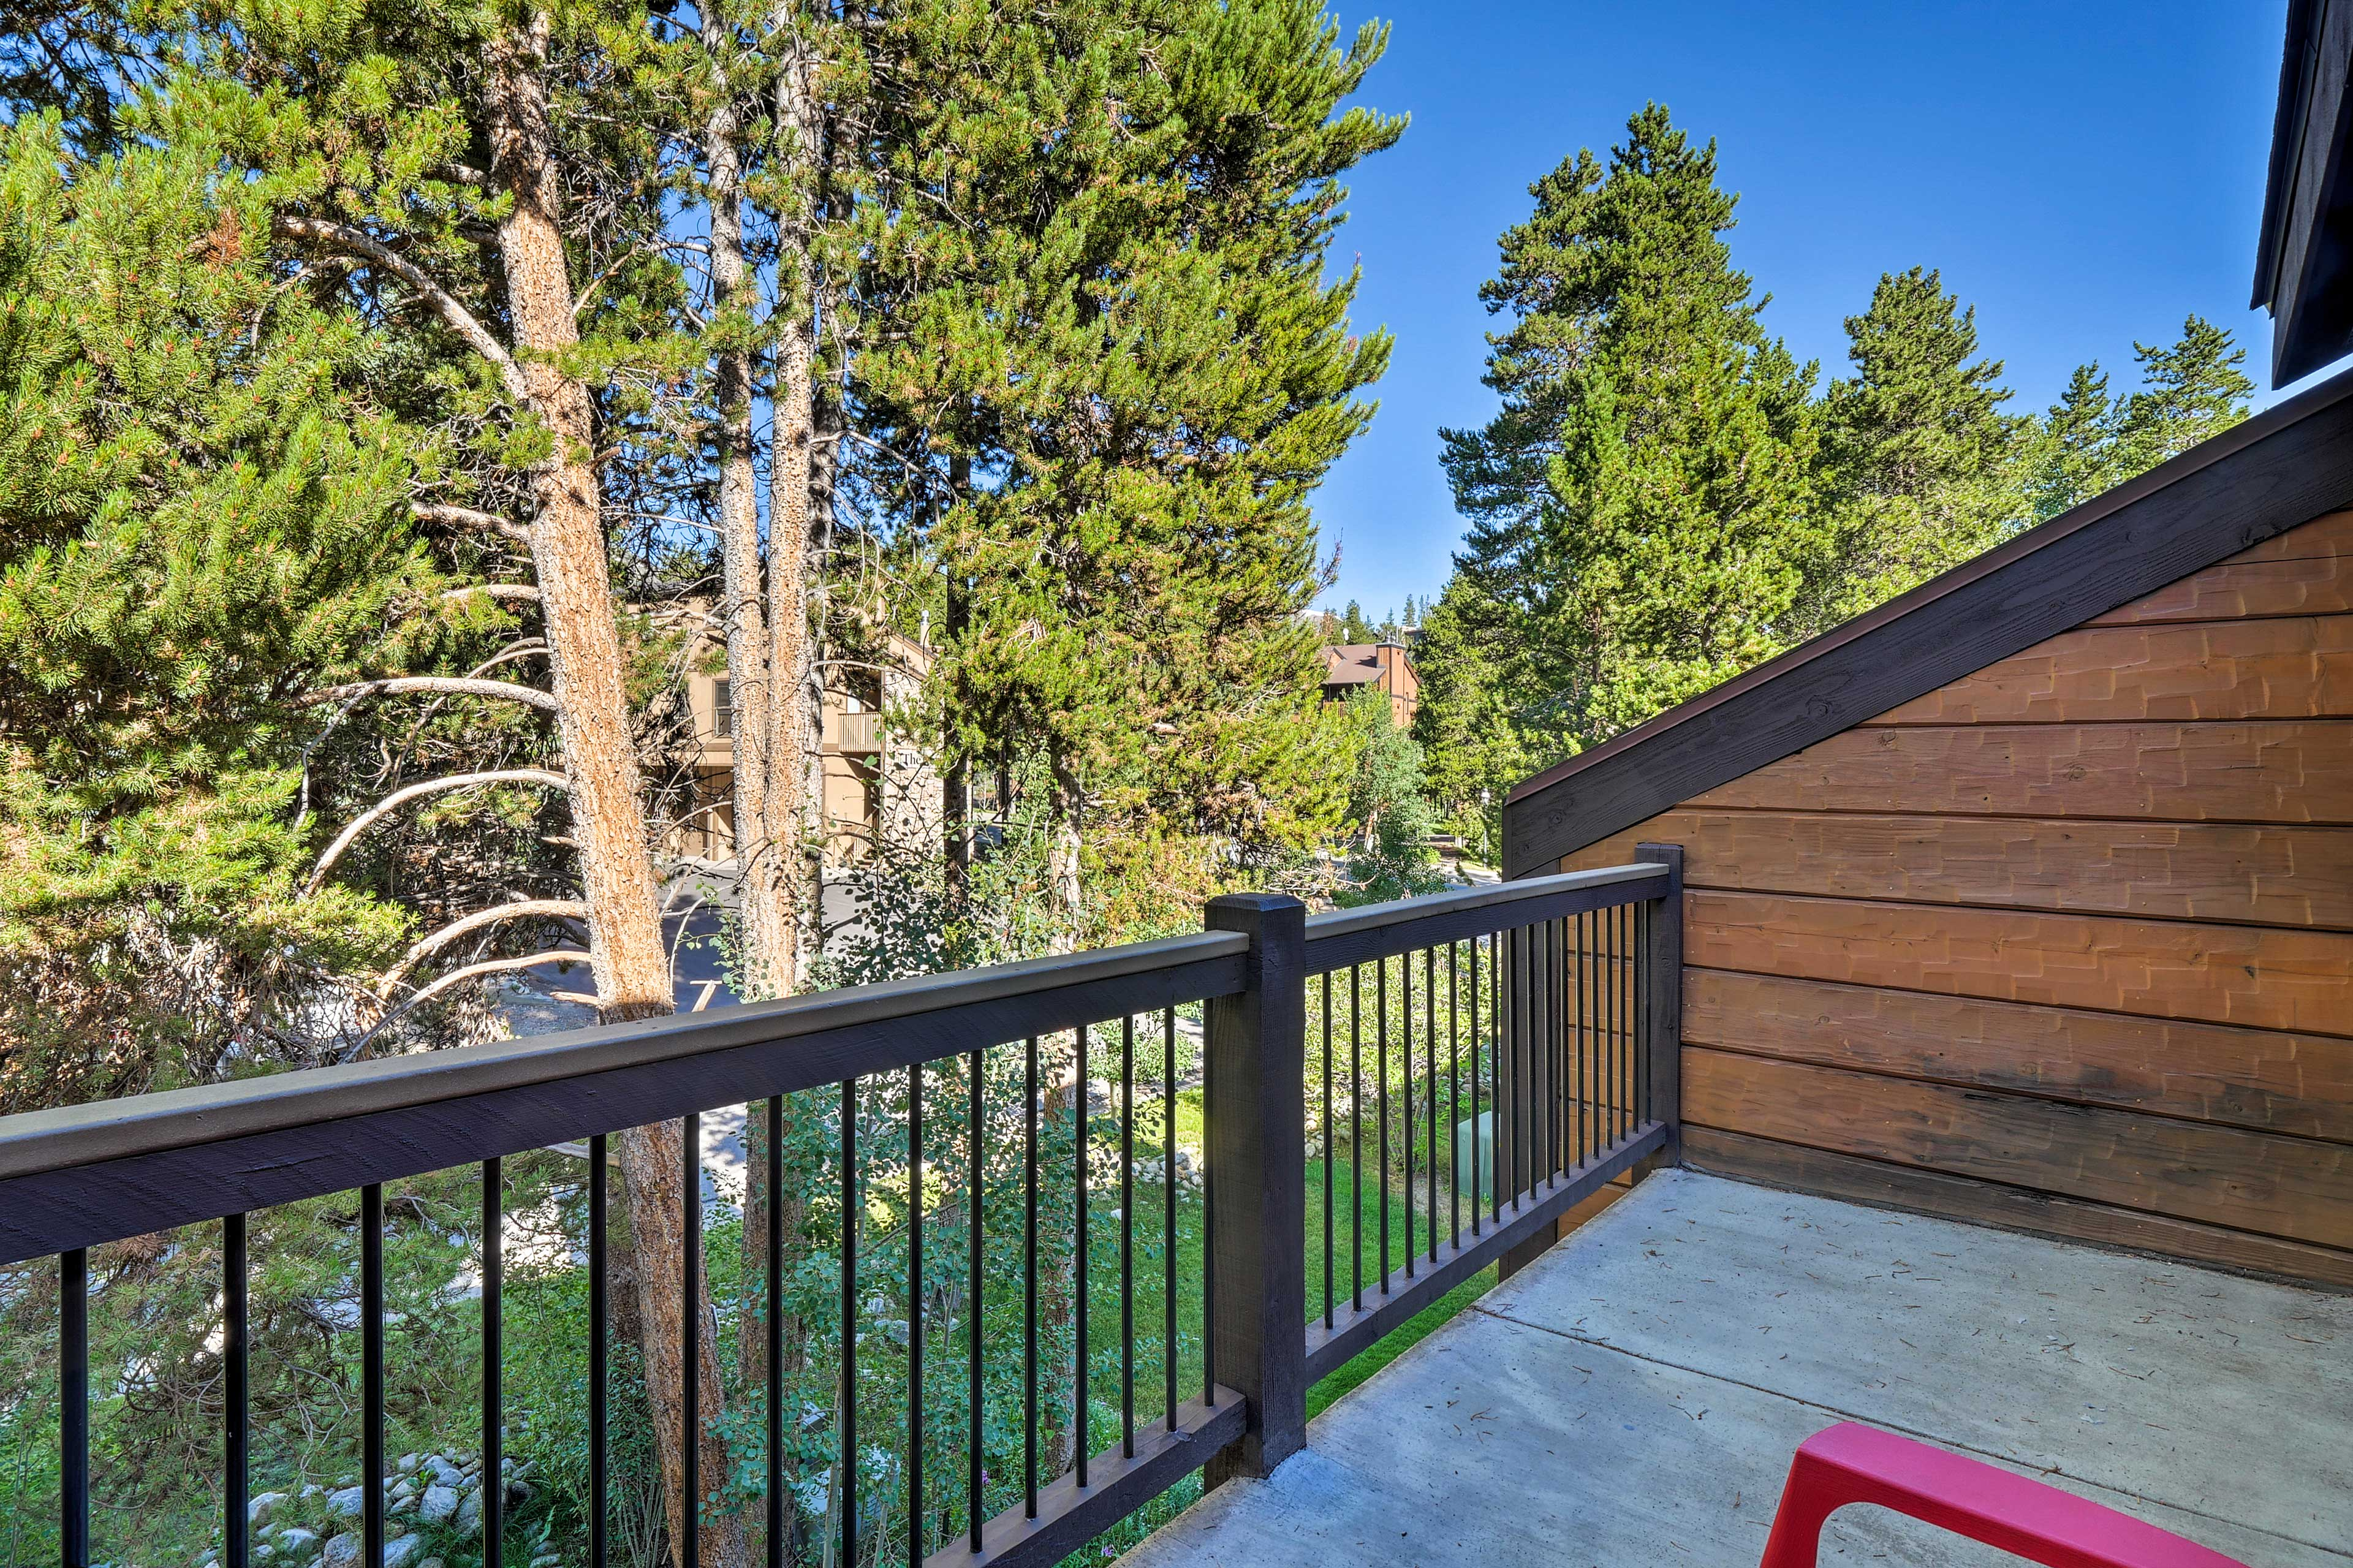 Never miss a day on the trails when you stay at this vacation rental townhome!